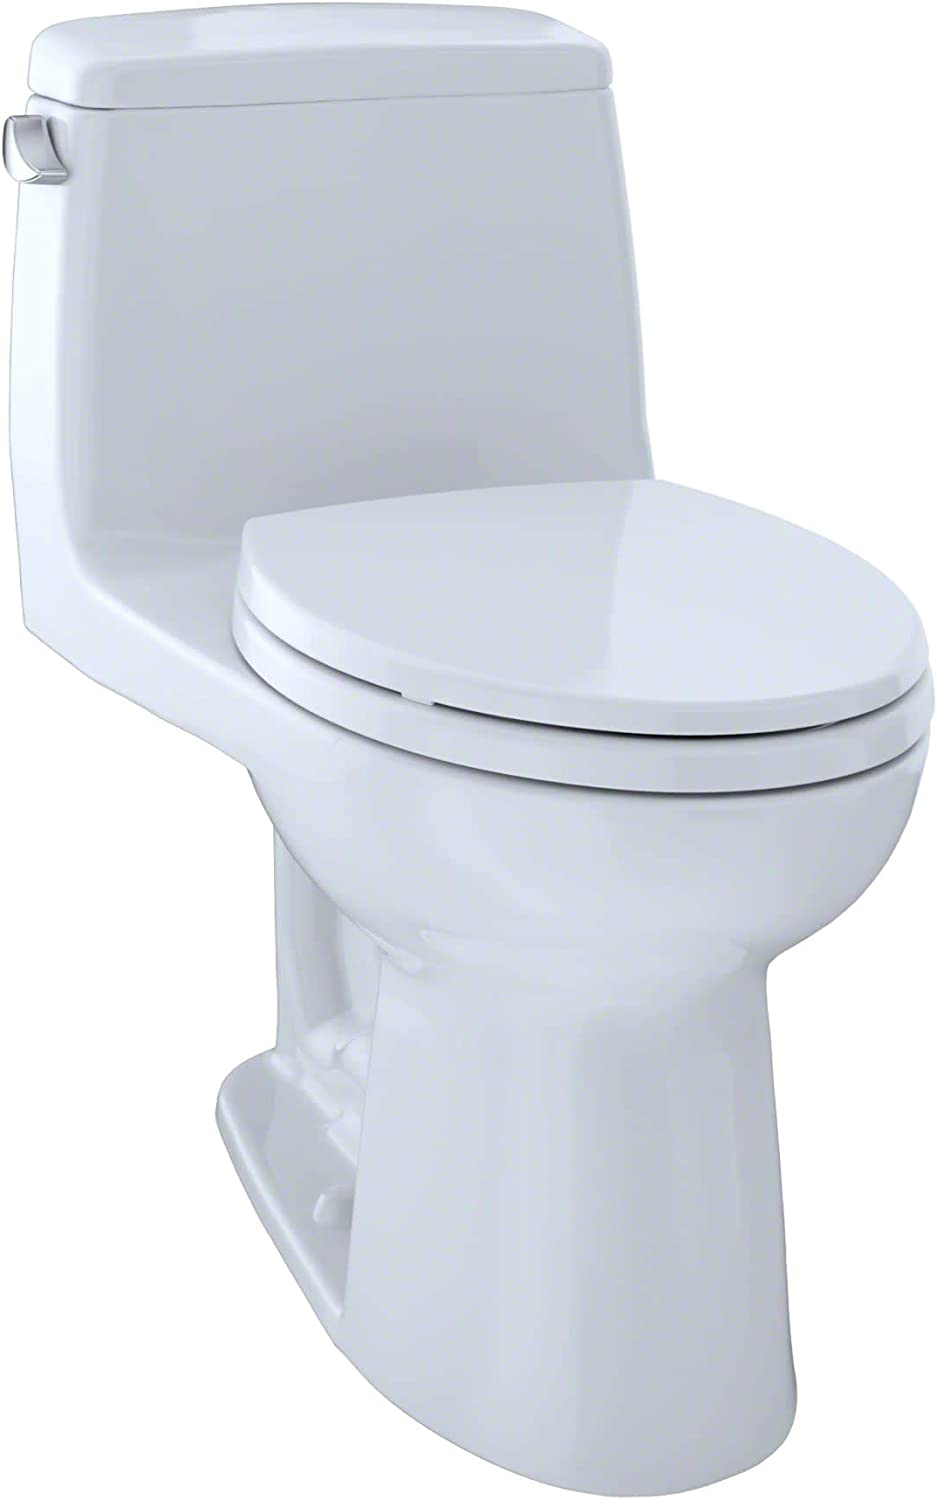 best comfort height toilets: TOTO MS854114ELG#01 Eco Ultramax Toilet